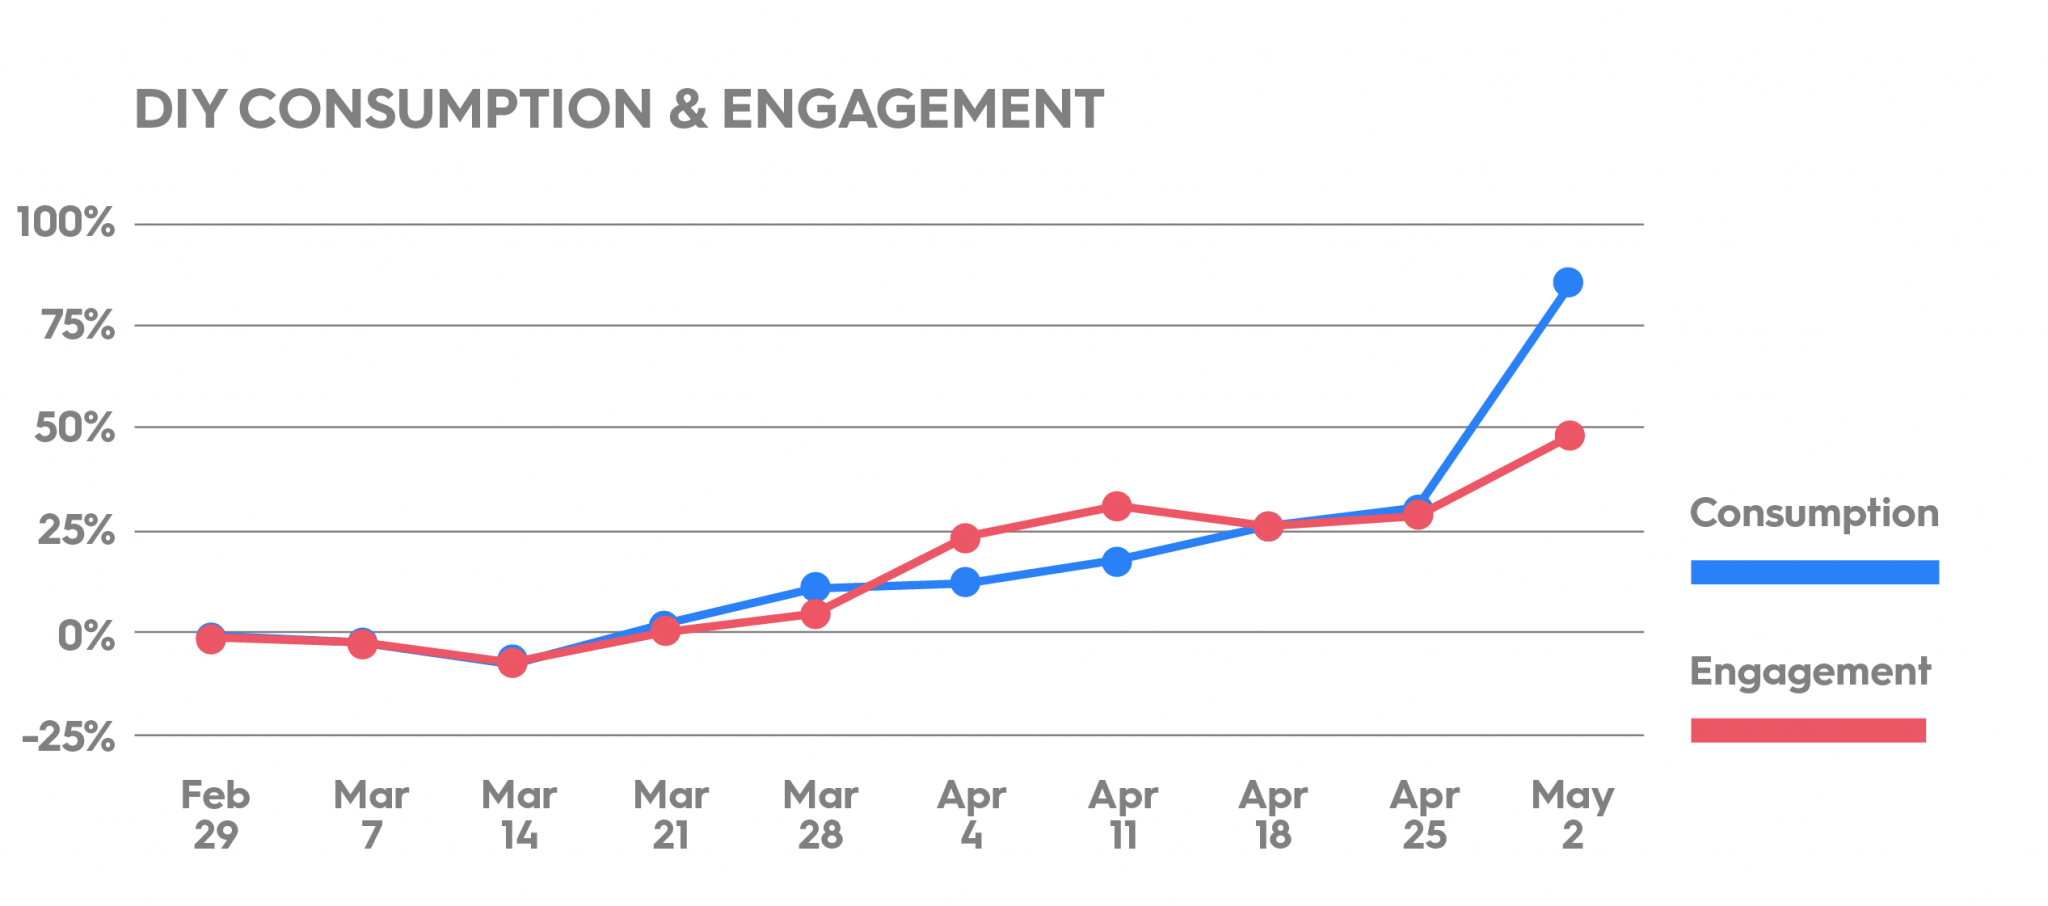 DIY Consumption and Engagement